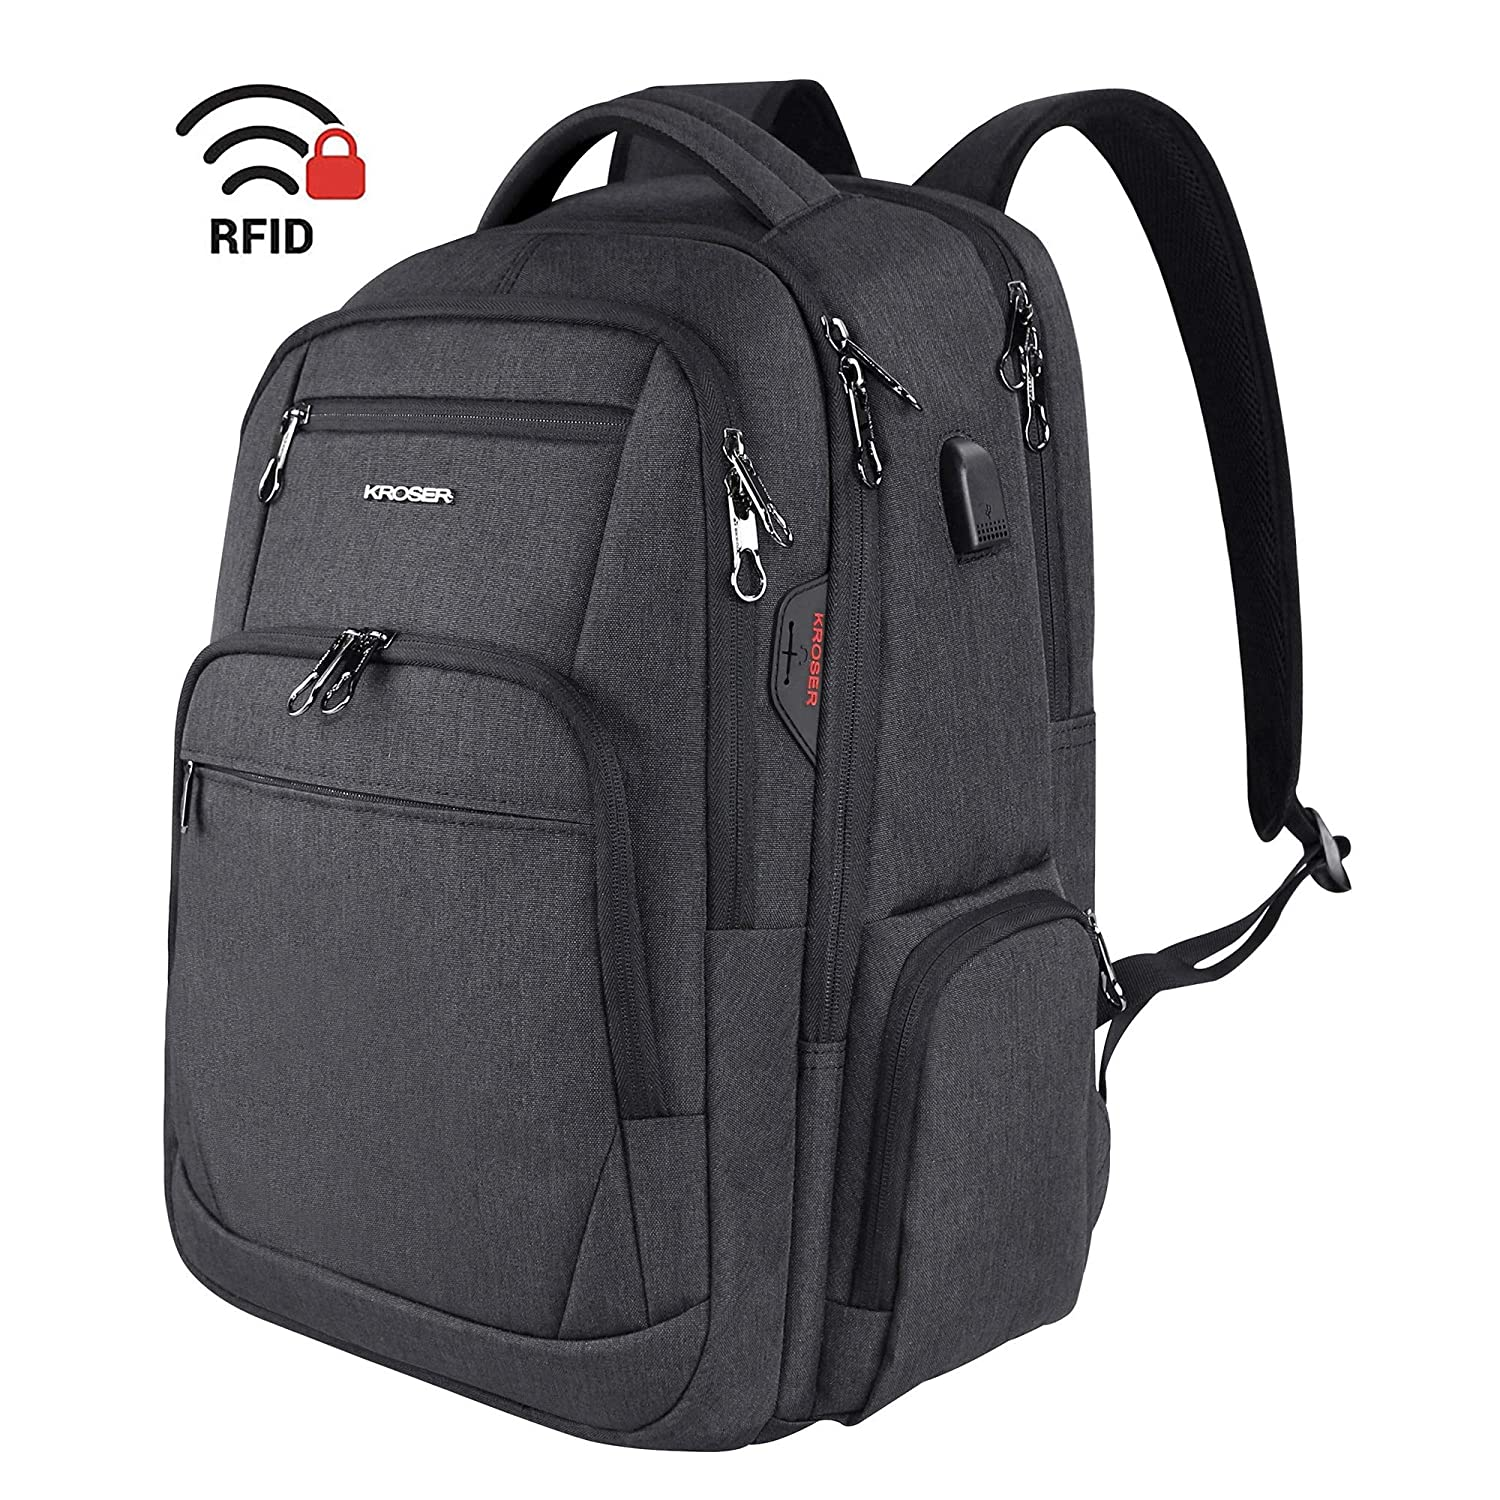 KROSER Travel Laptop Backpack 15.6-17.3 Inch Large Computer Backpack Water-Repellent School Daypack with USB Charging Port /& Headphone Interface RFID Pockets for Work//Business//College//Men//Women